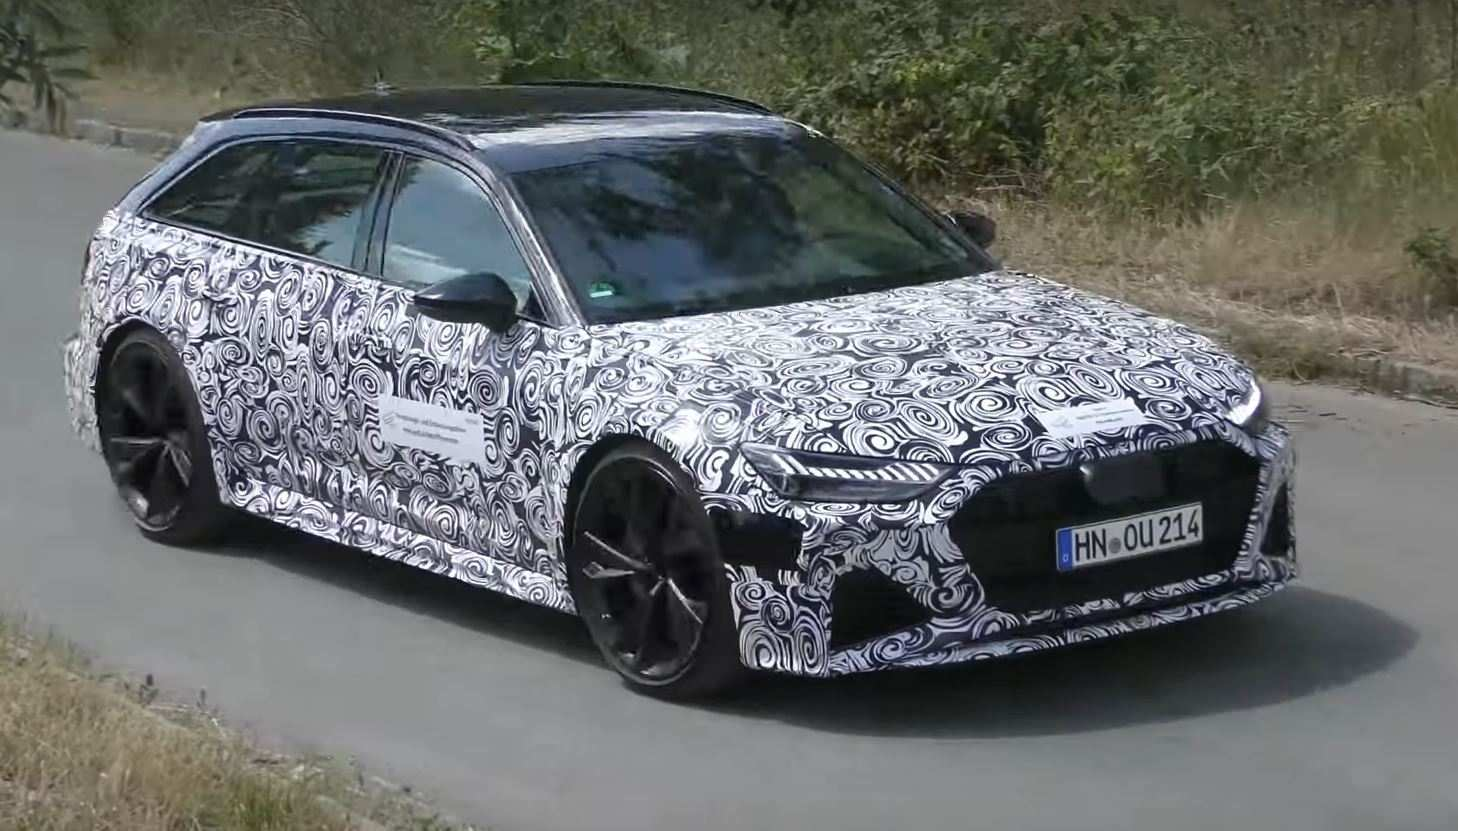 93 Great 2020 Audi Rs6 Wagon First Drive with 2020 Audi Rs6 Wagon